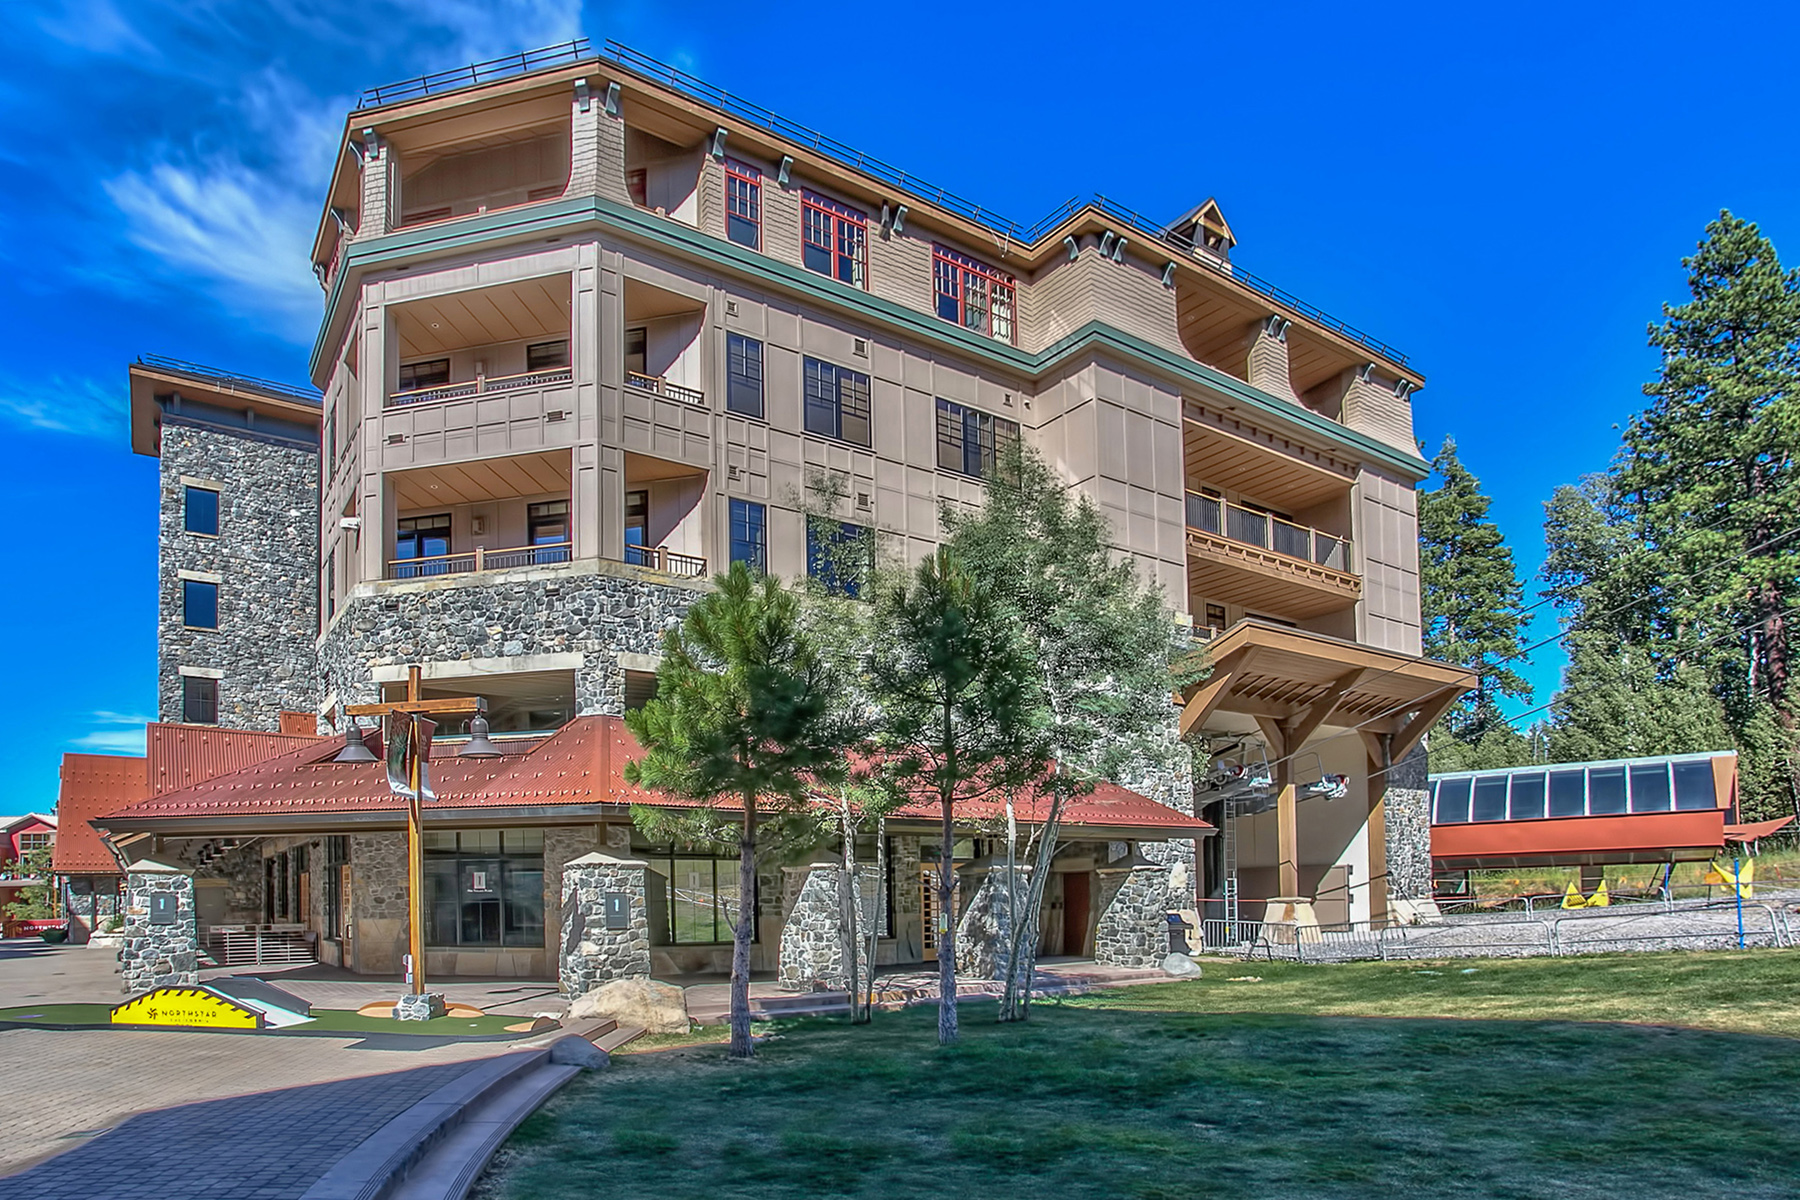 Additional photo for property listing at 3001 Northstar Drive #212, Truckee, CA 3001 Northstar Drive #212 Truckee, California 96161 United States